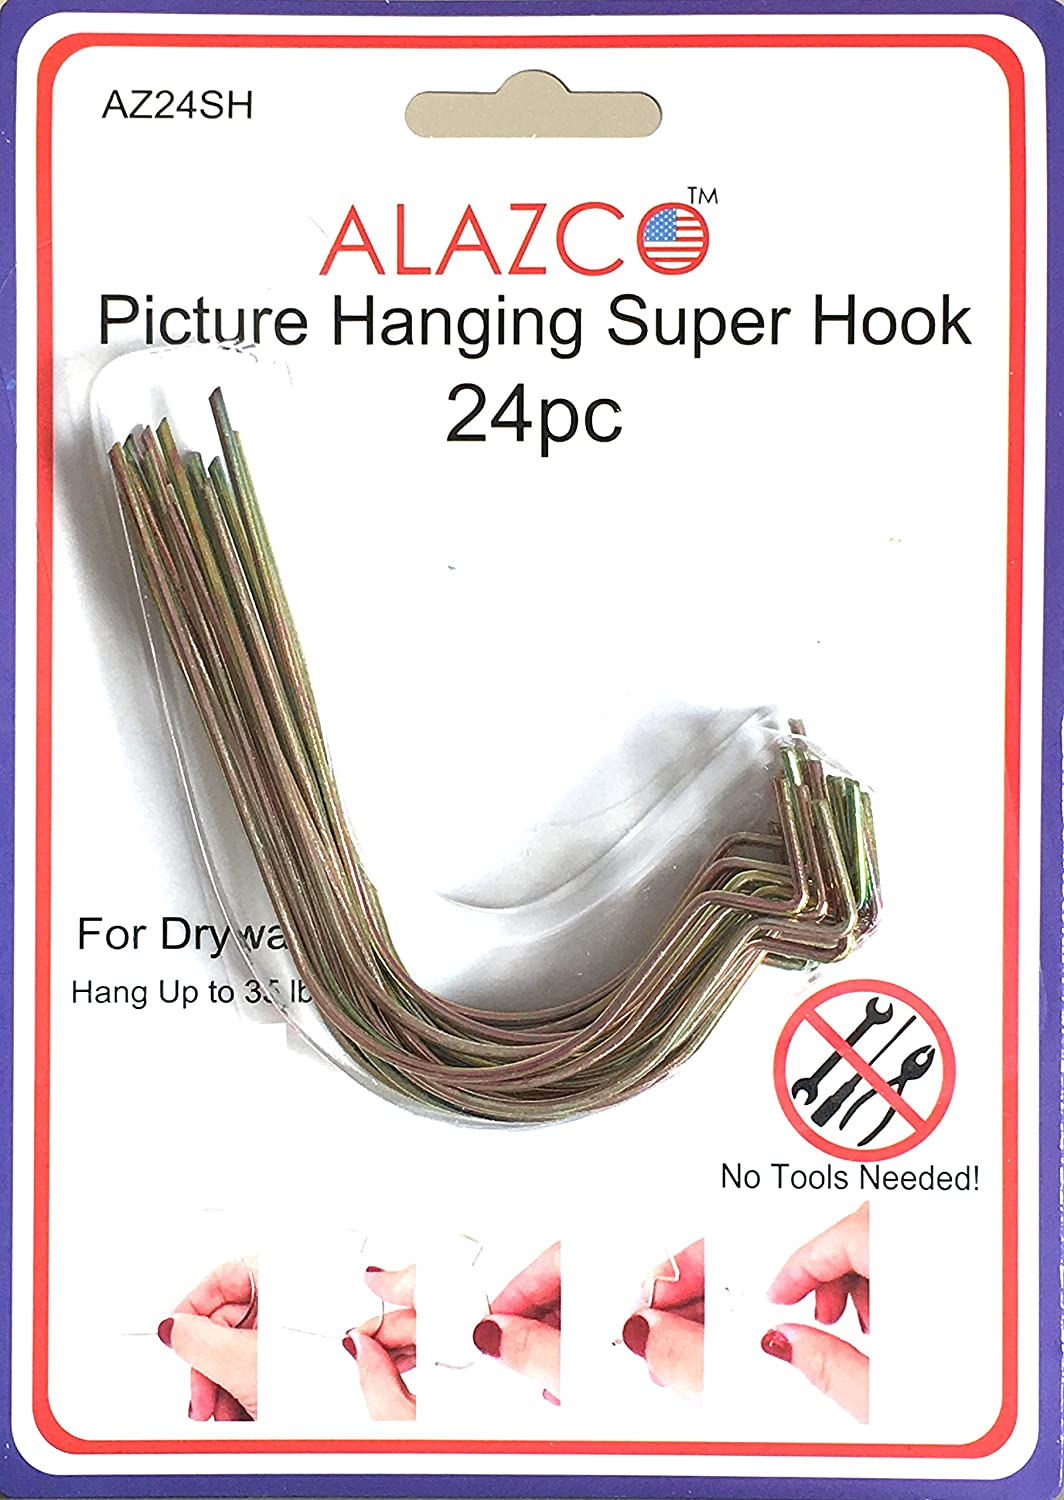 Hooks Without Nails Part - 22: 24pc Set ALAZCO Super Hooks - Hang Pictures Without ANY TOOL, Hammer, Nails  Or Drilling! Excellent Quality! - - Amazon.com